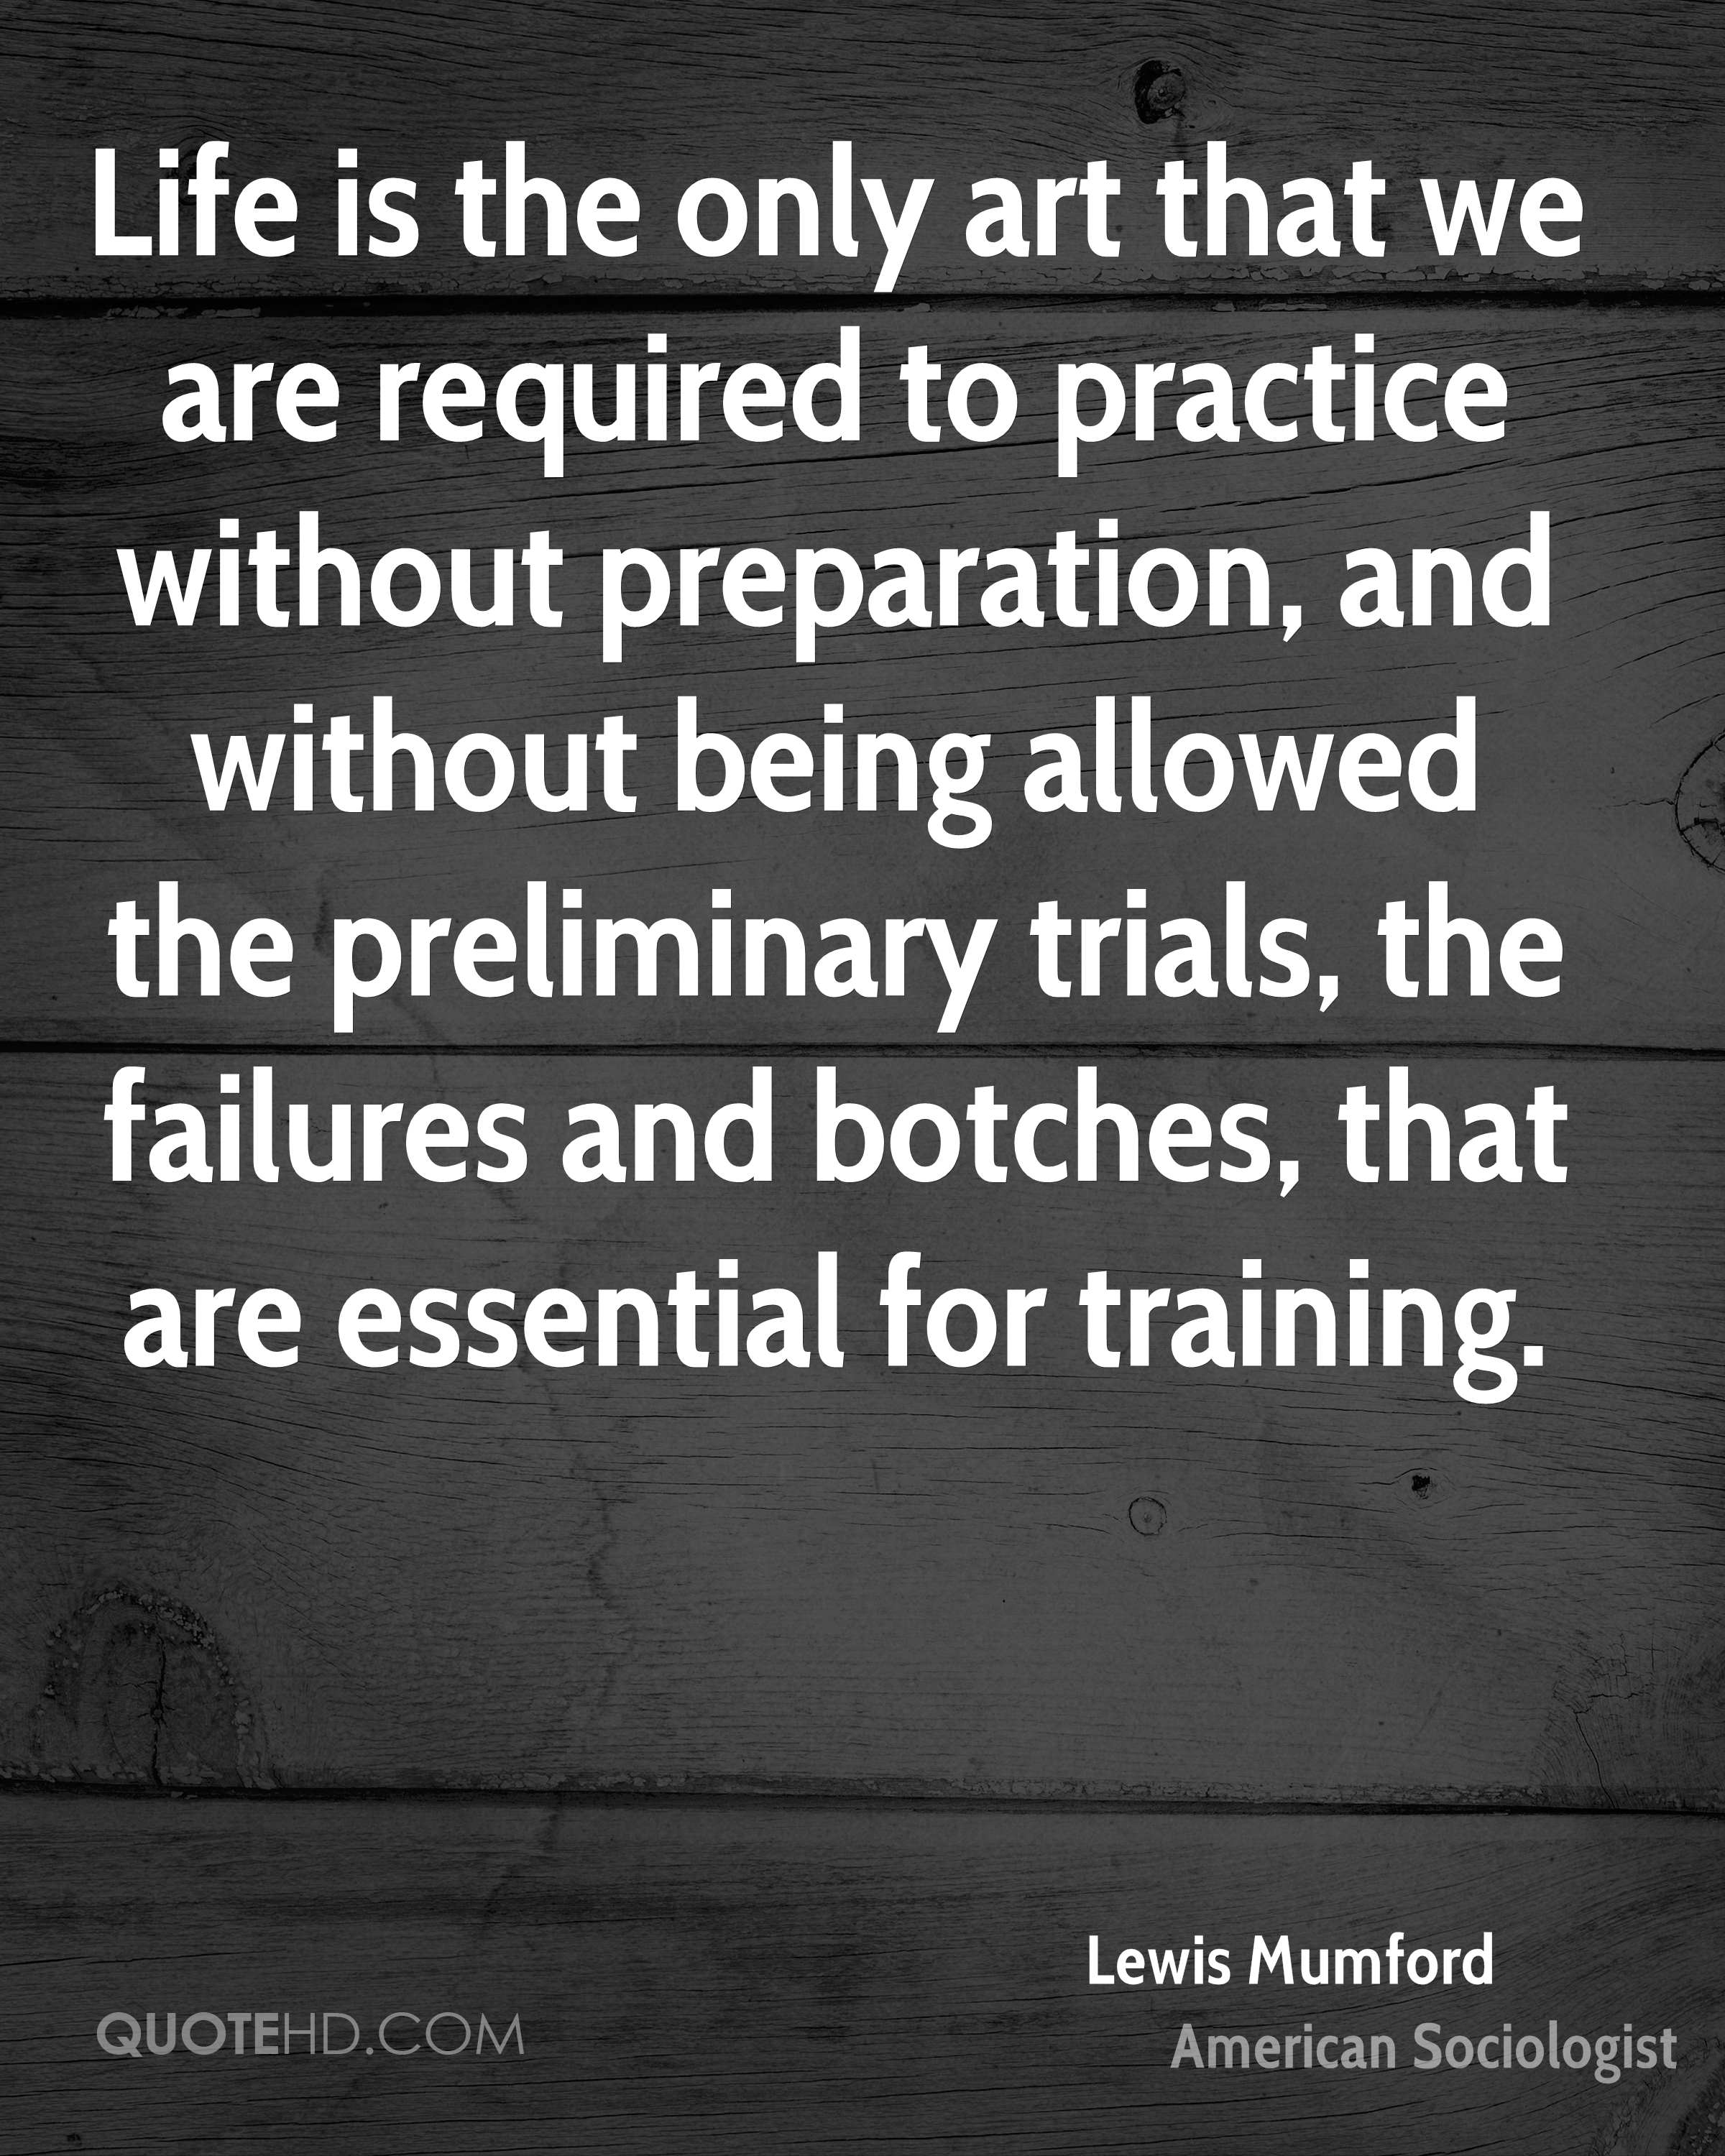 Life is the only art that we are required to practice without preparation, and without being allowed the preliminary trials, the failures and botches, that are essential for training.